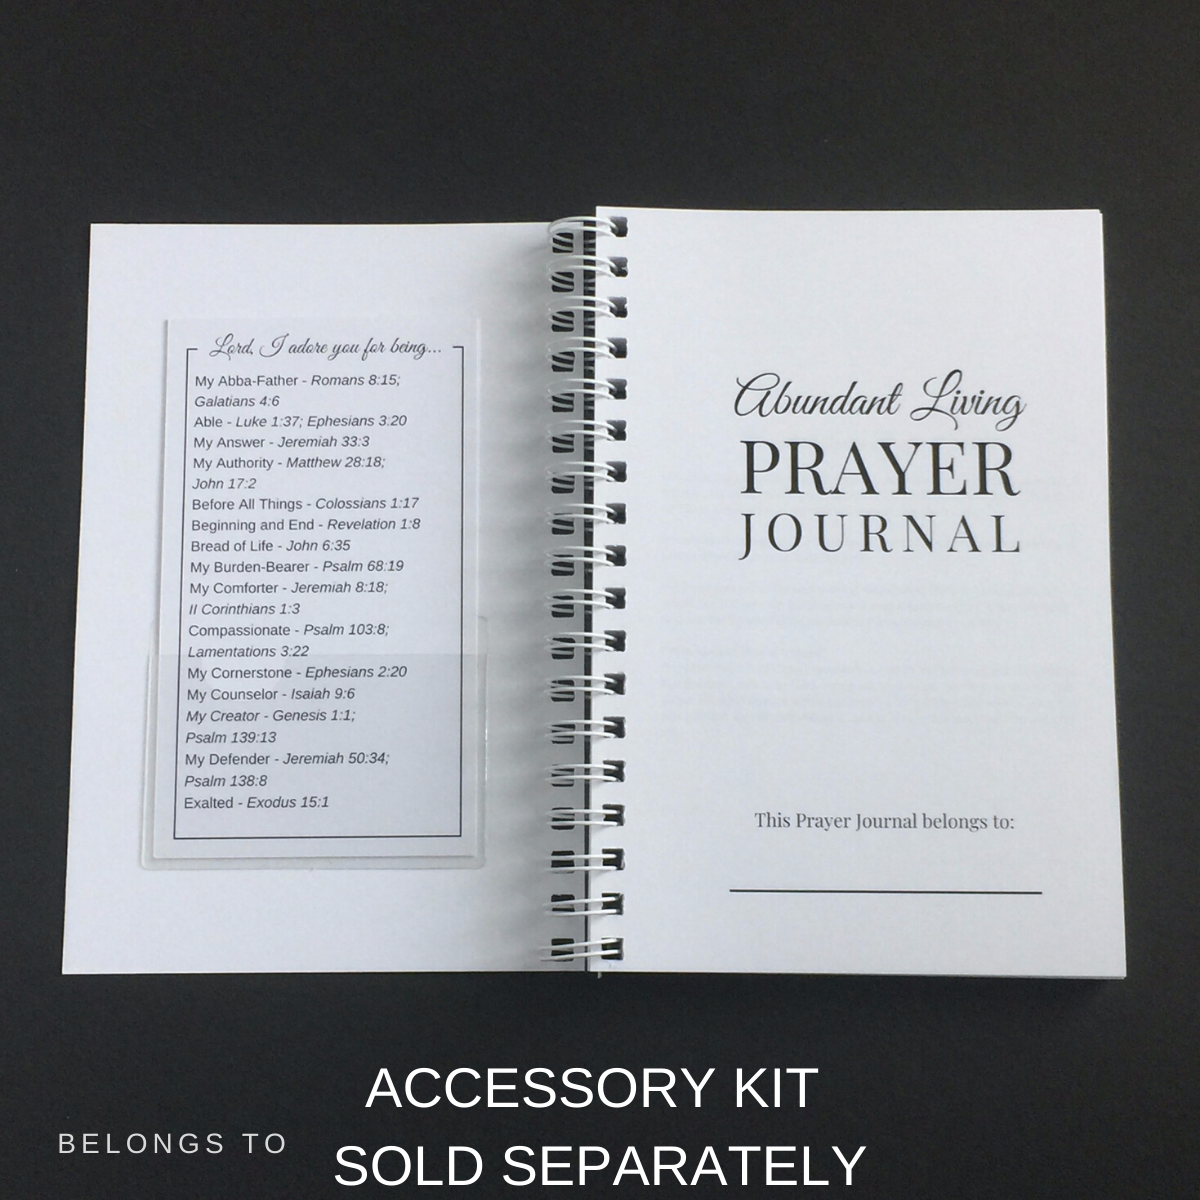 adoration accessory kit inside front cover of journal